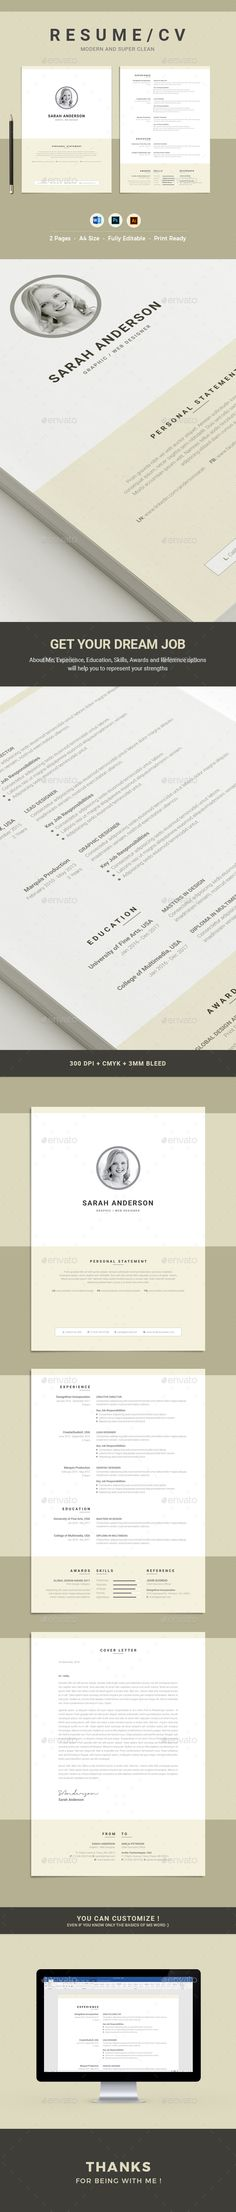 Clean Resume CV Template Free PSD Cv template, Resume cv and Psd - resume customization reasons